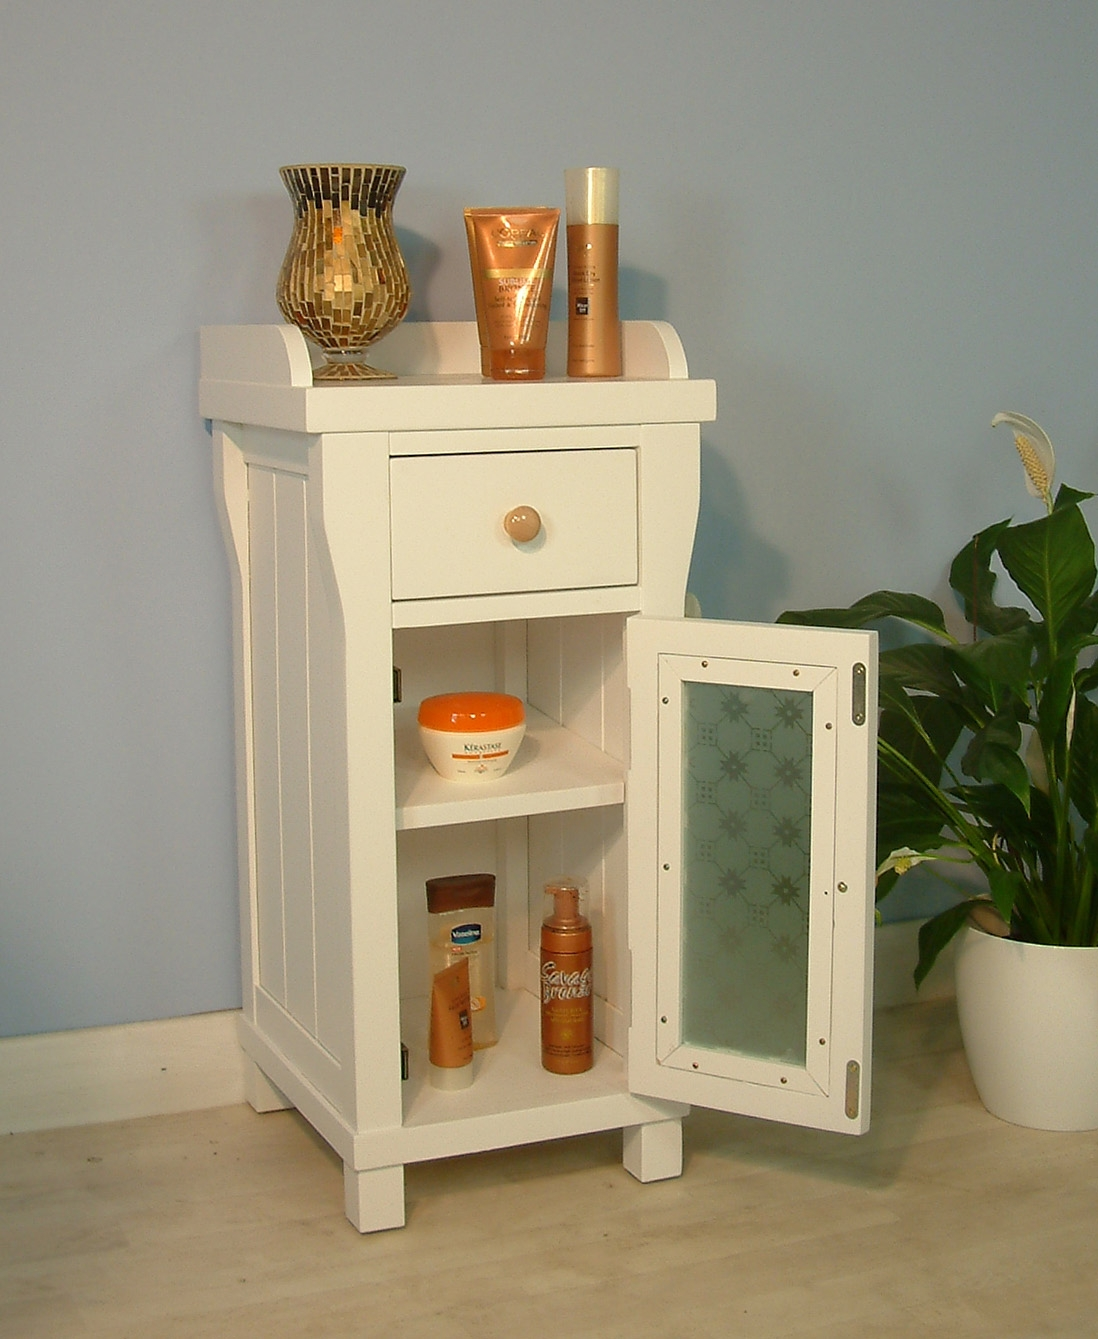 Storage Cabinets With Drawers For Bathroom